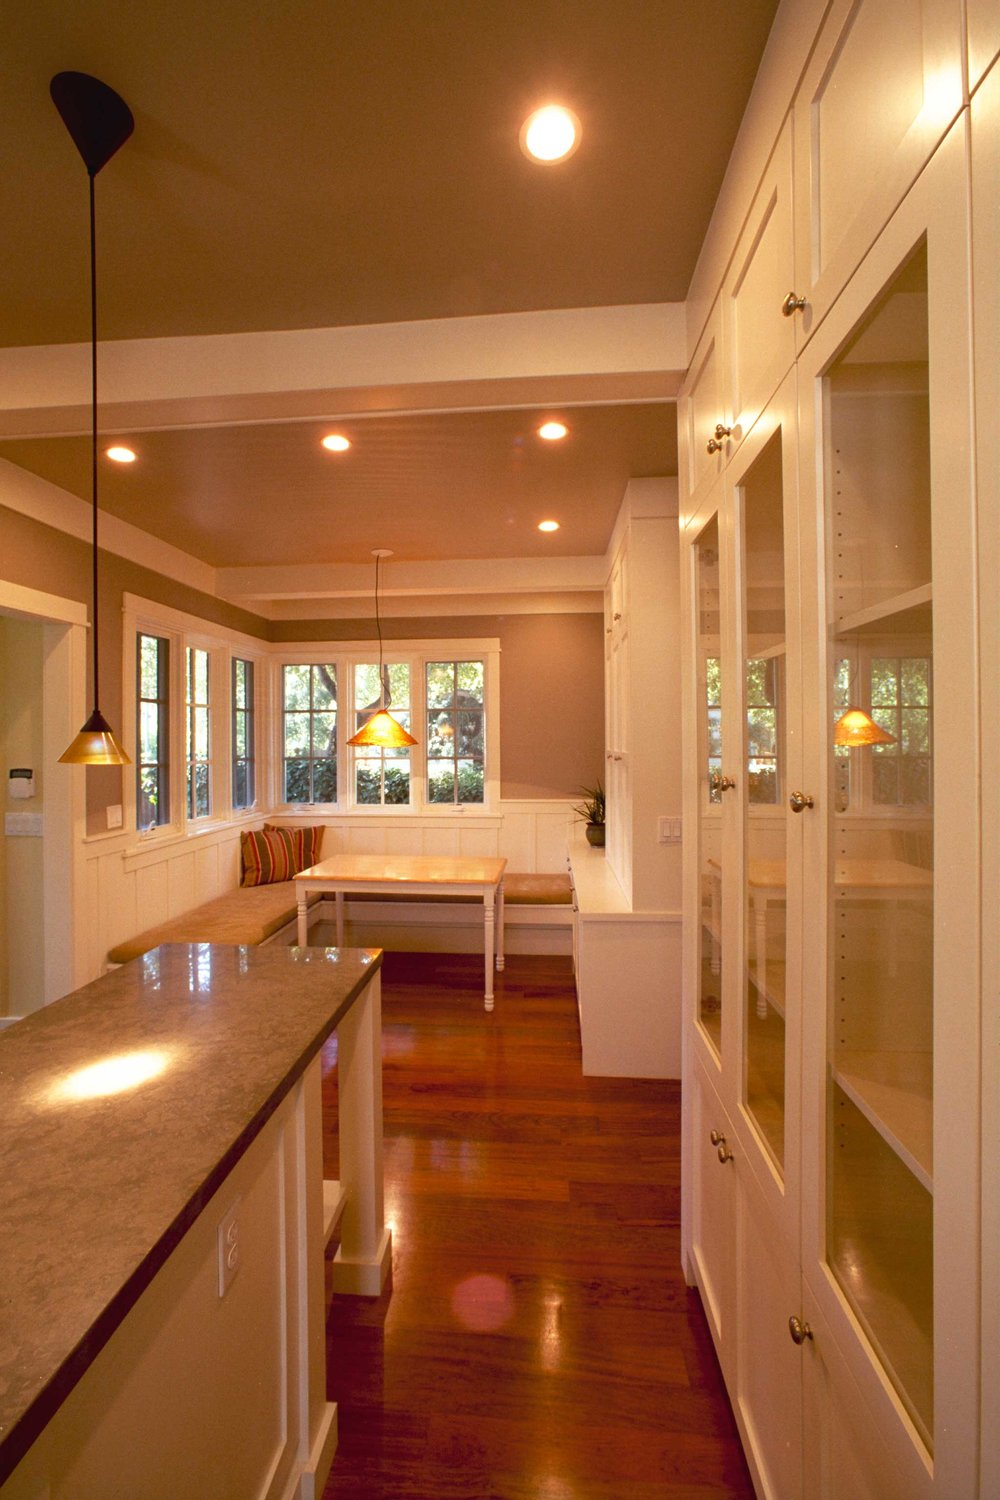 Palo-Alto-Kitchen-2-MS.jpg